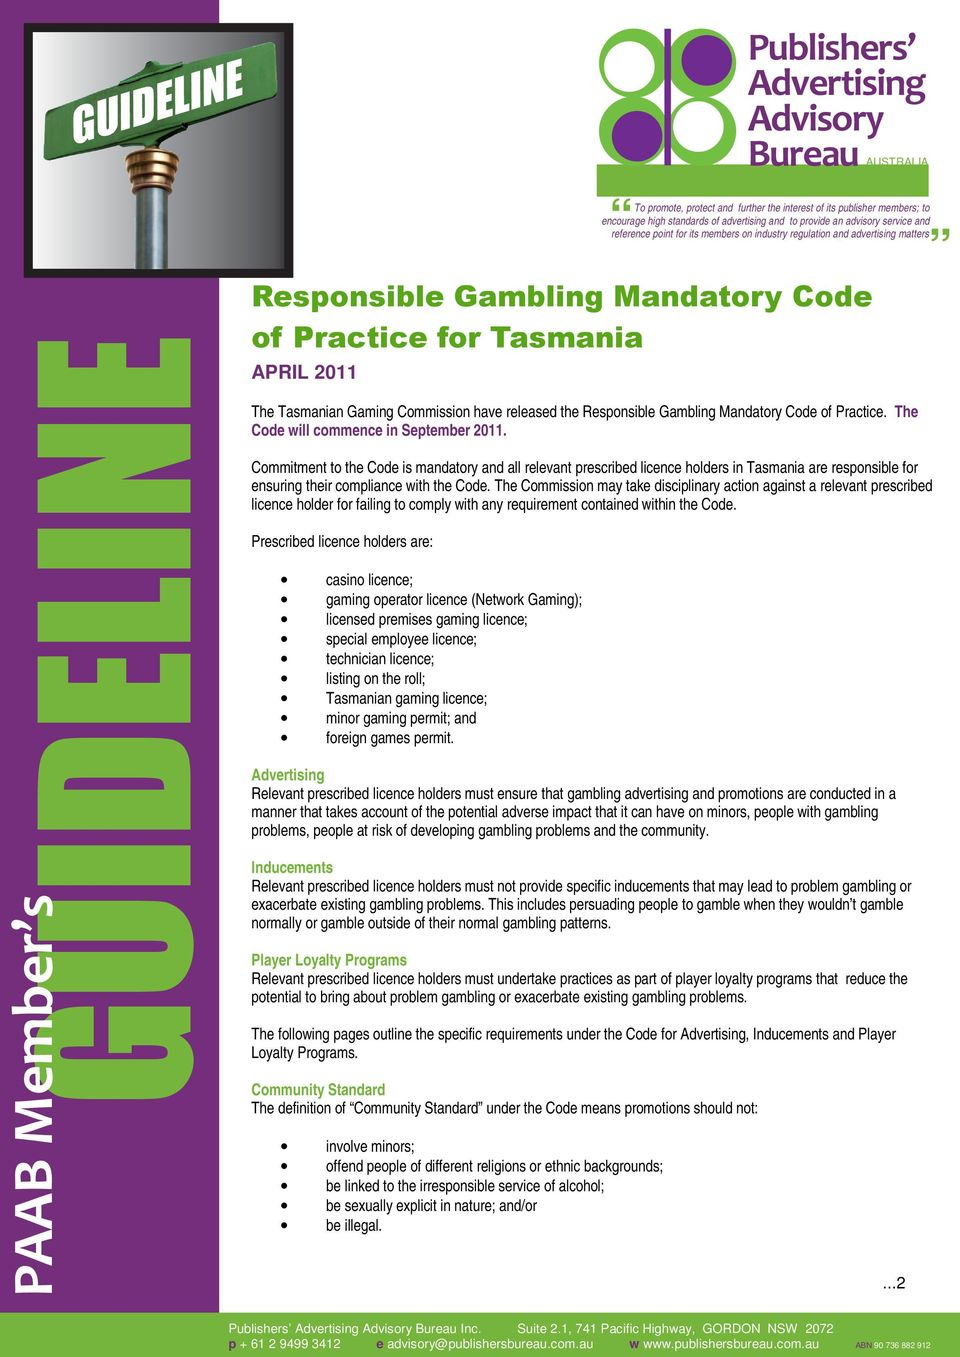 Tasmanian Gaming Commission have released the Responsible Gambling Mandatory Code of Practice. The Code will commence in September 2011.